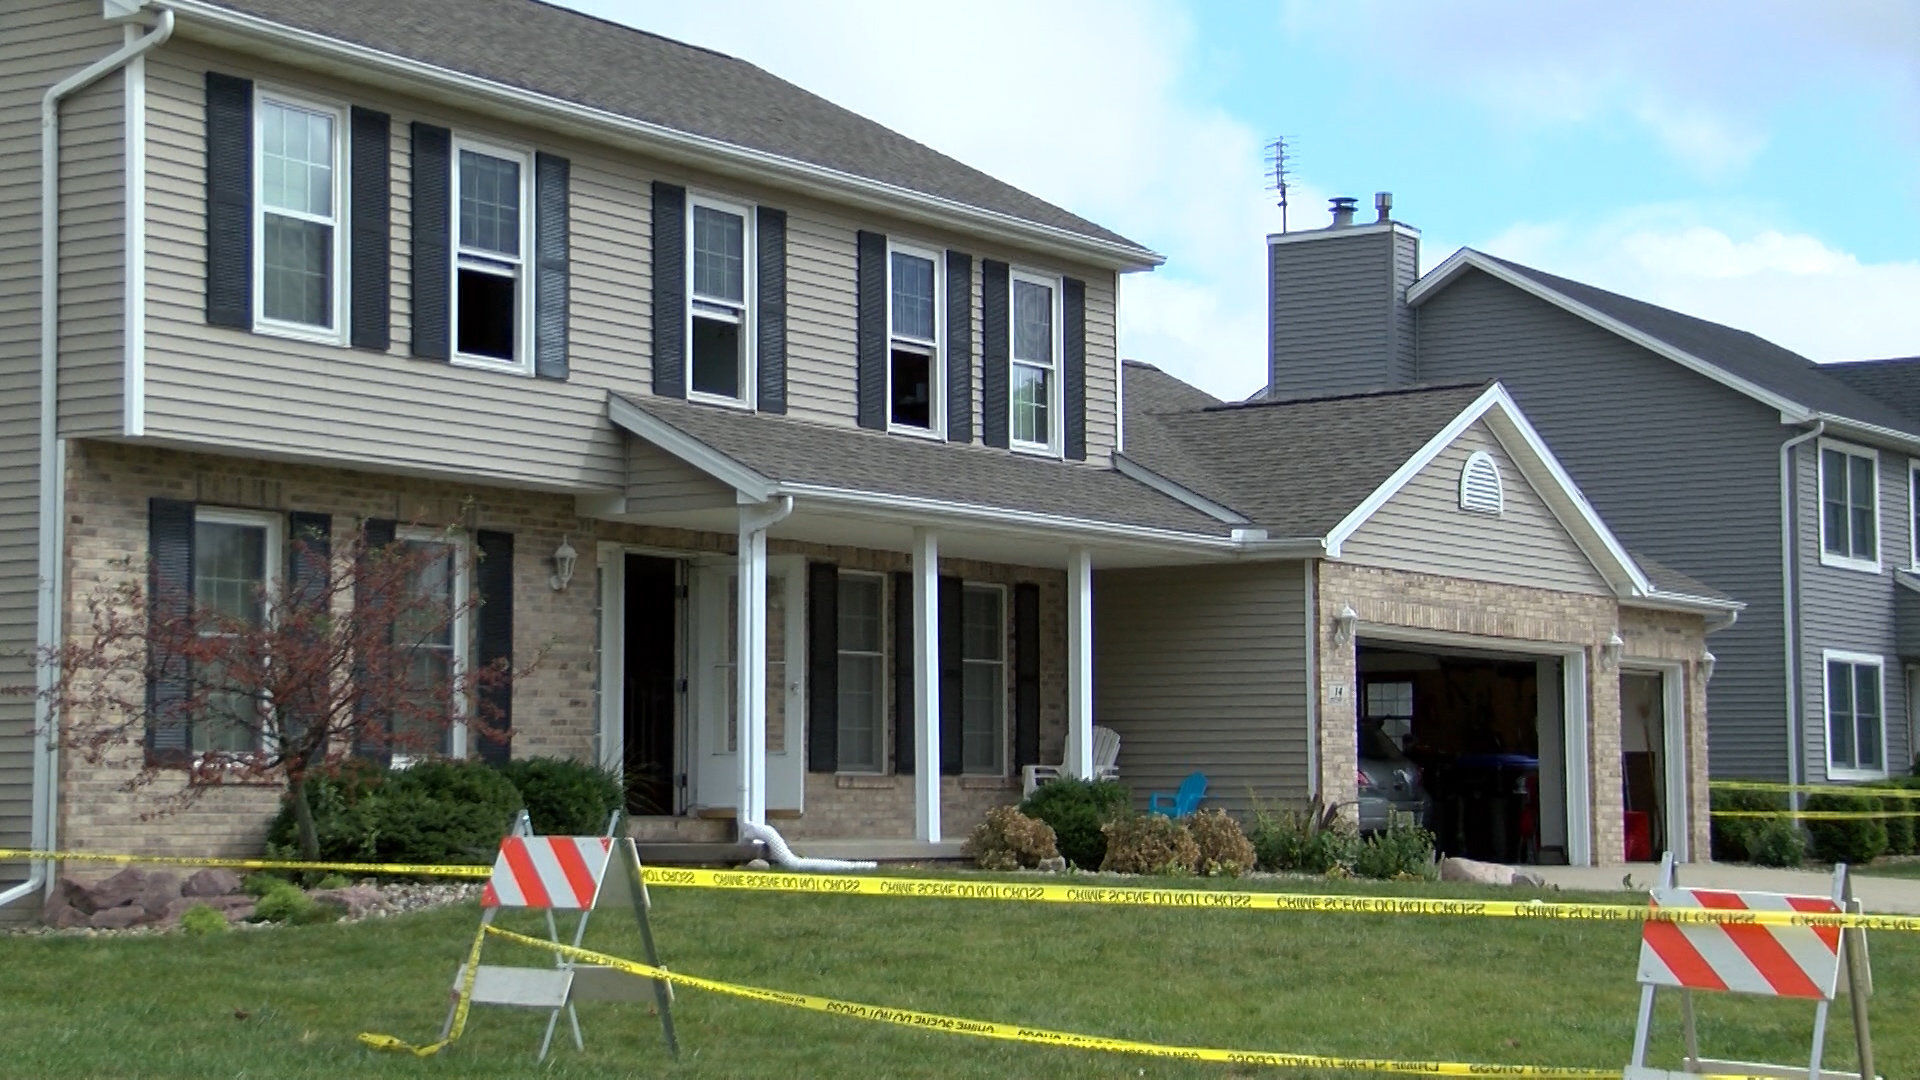 BRITTANY CT FIRE_1505950766376.jpg